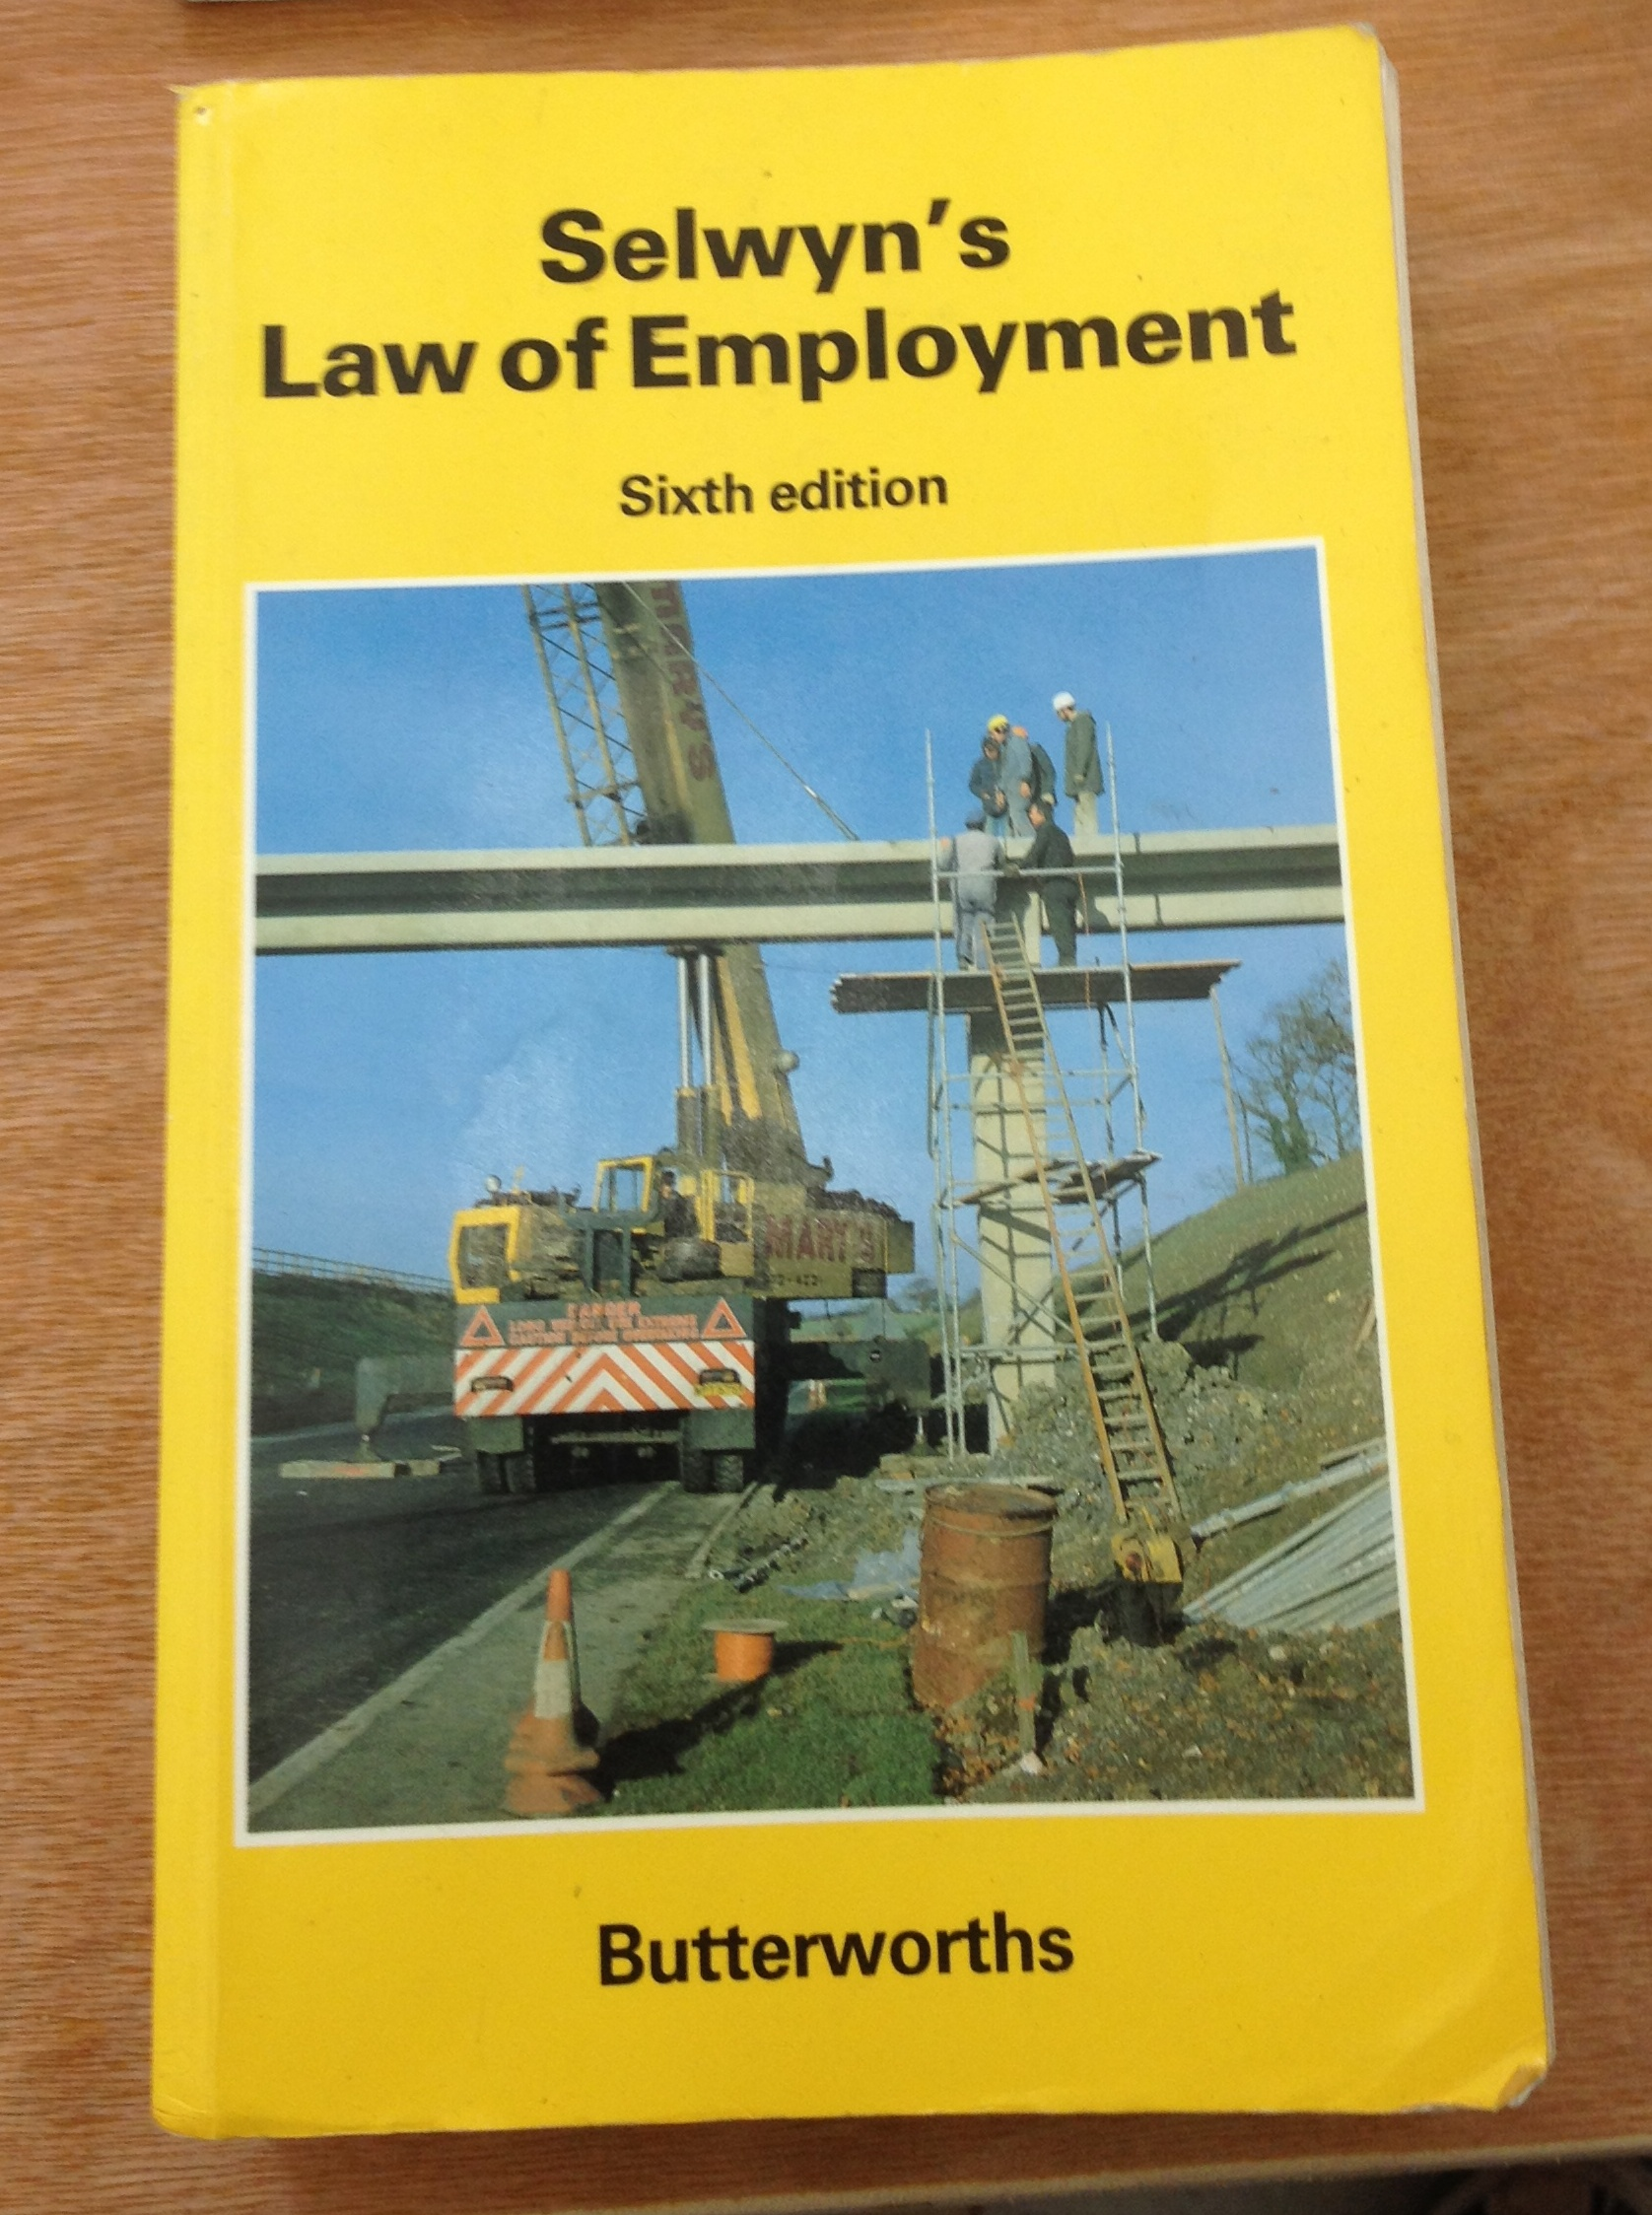 Selwyn's Laws of Employment - Greengrassi, Corvi-Mora - Kenningtonrunoff.com